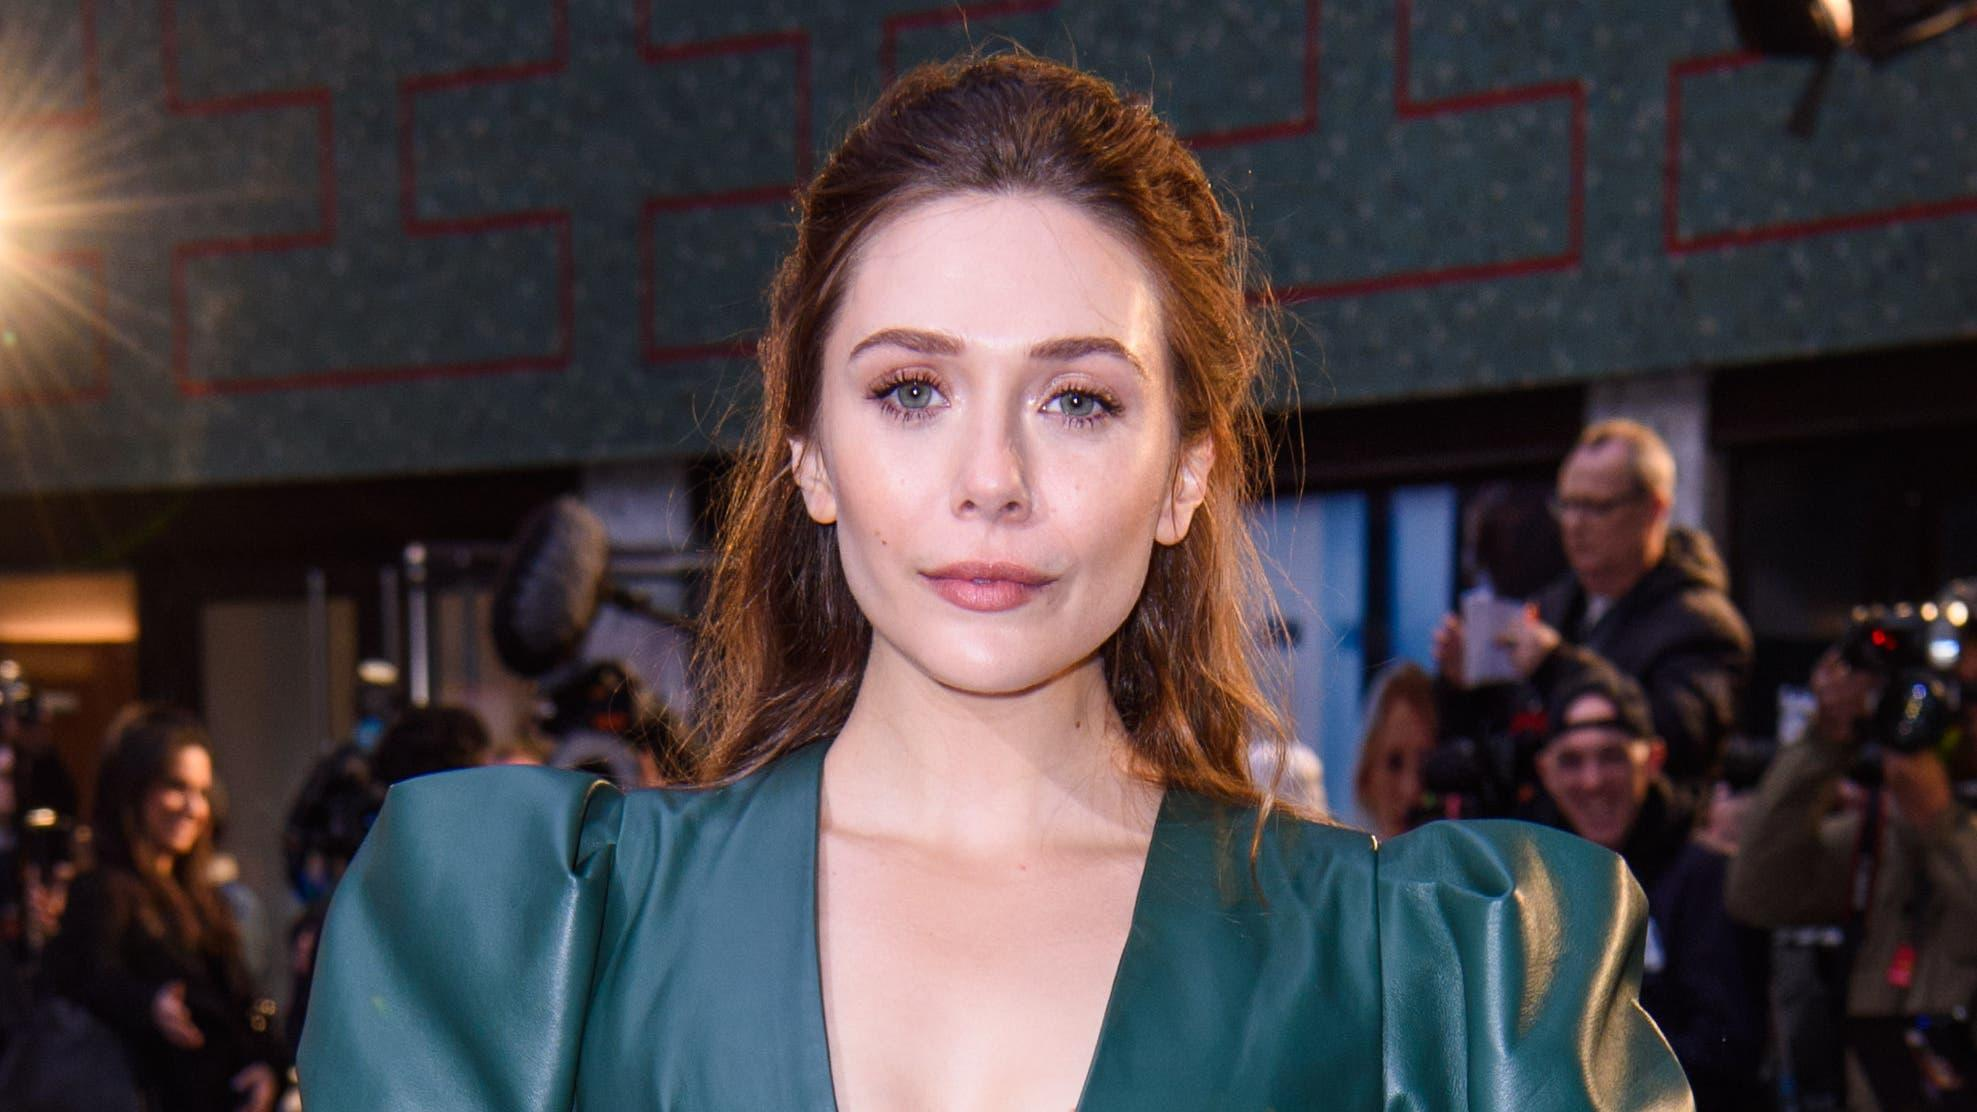 Elizabeth Olsen says she had 'debilitating' panic attacks in her younger years